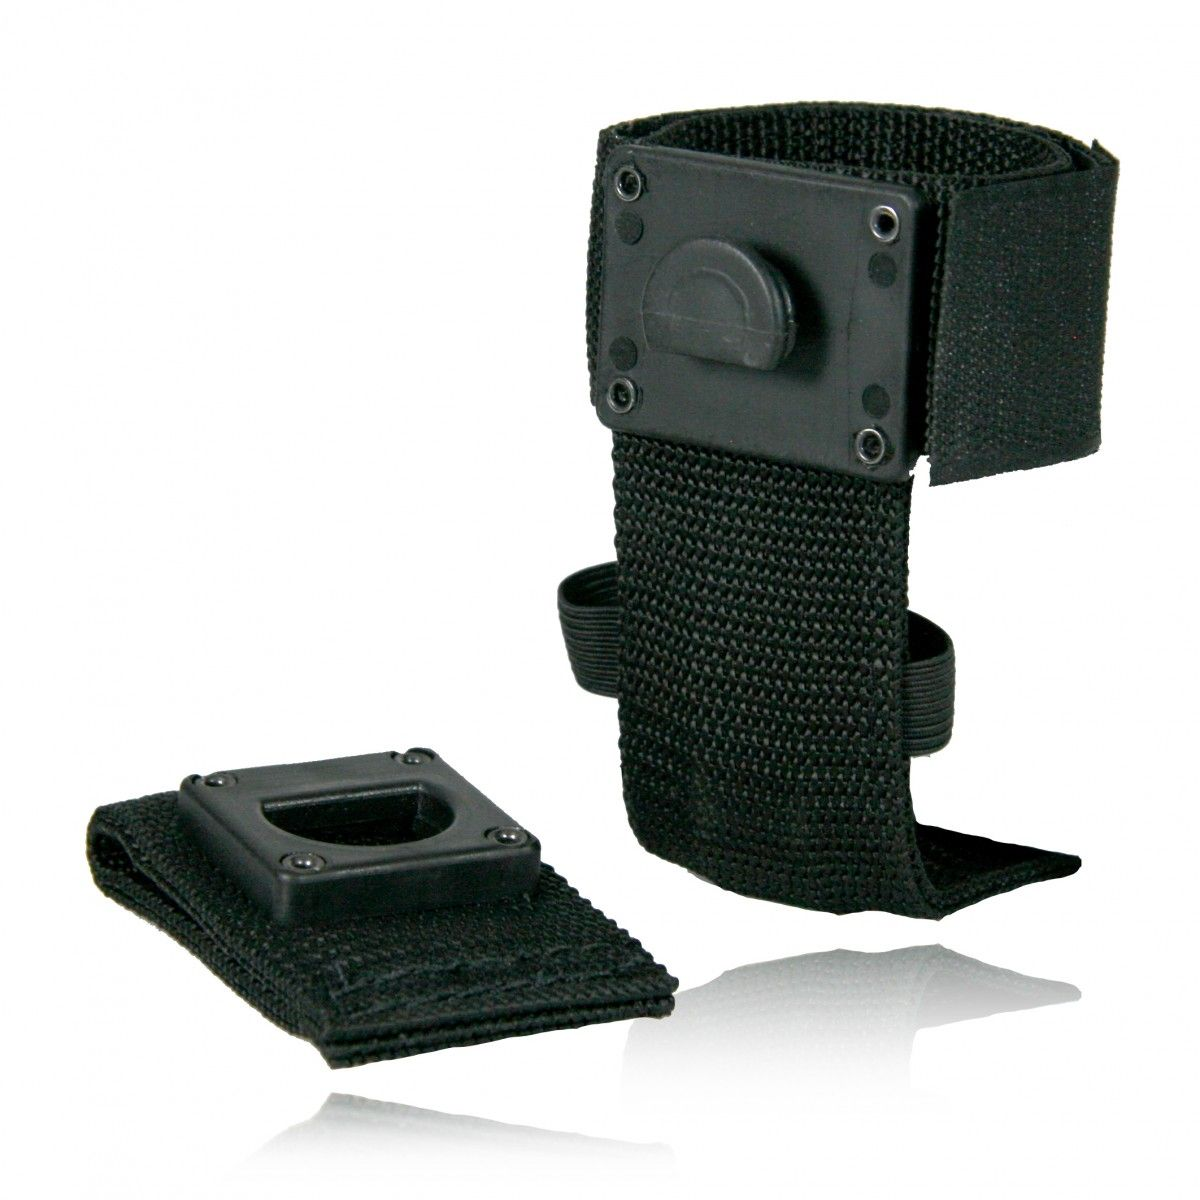 "Deluxe Adjustable Radio Holder 4"", Swivel, Ballistic Weave"